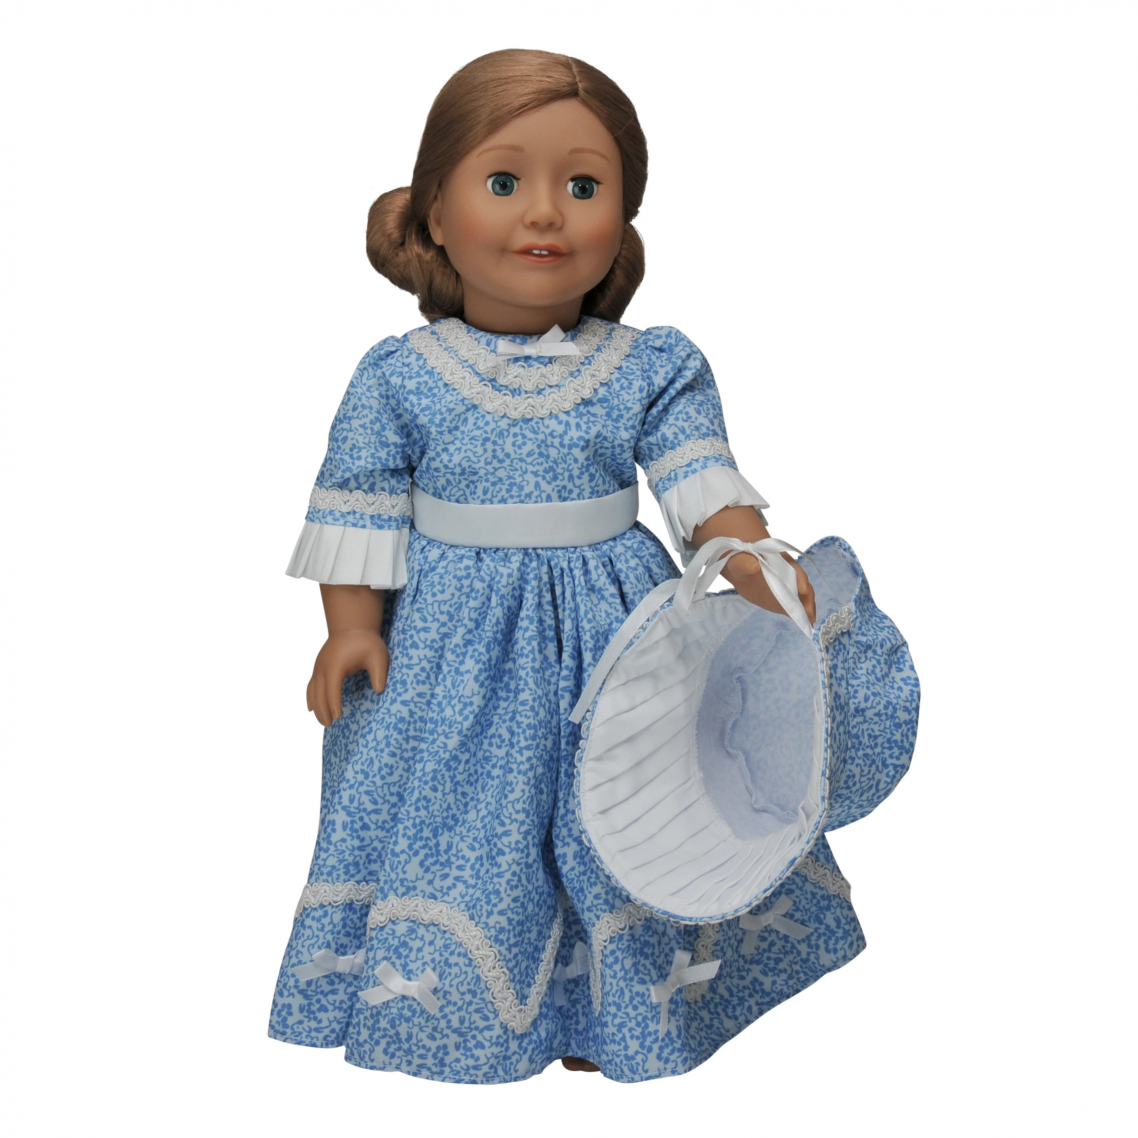 Treasured Dolls Light Skin With Curly Light Brown Hair And